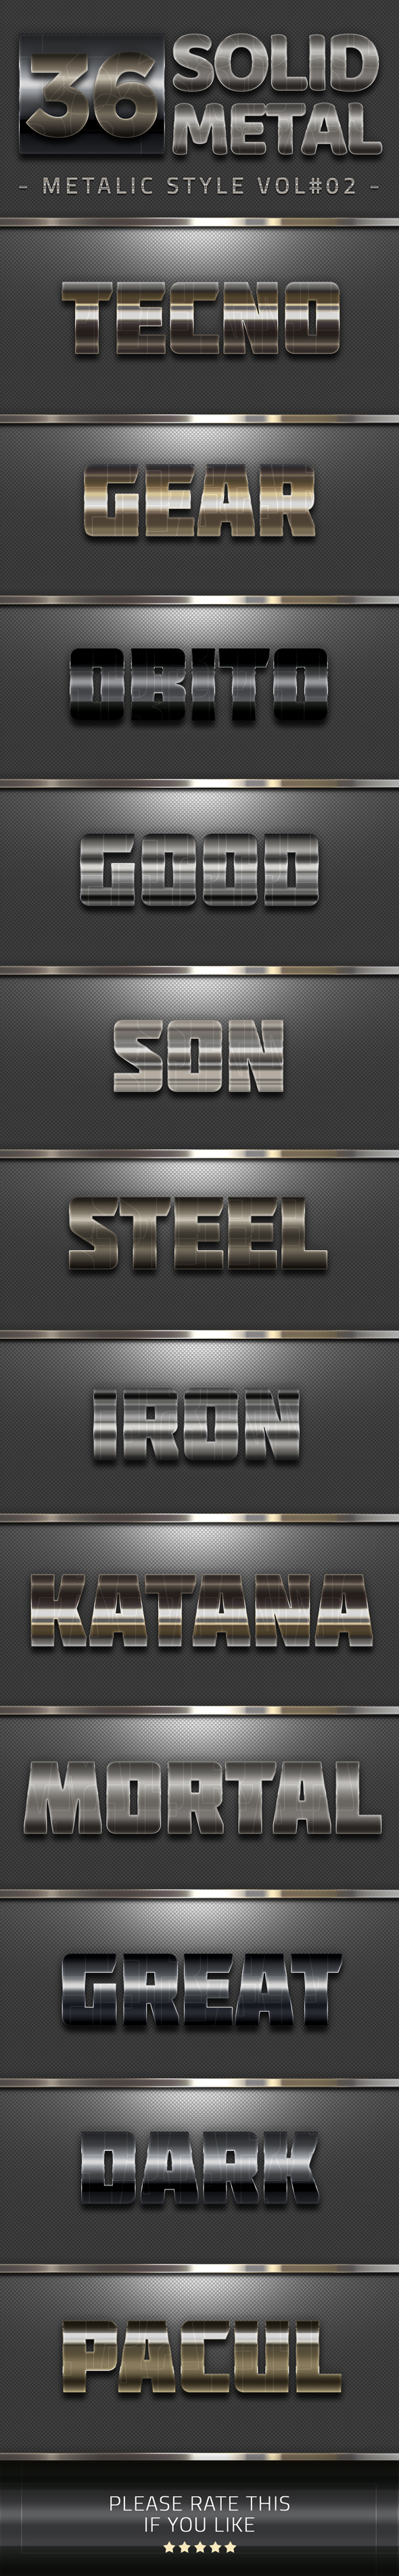 36 Solid Metal Text Effect V02 - Text Effects Styles